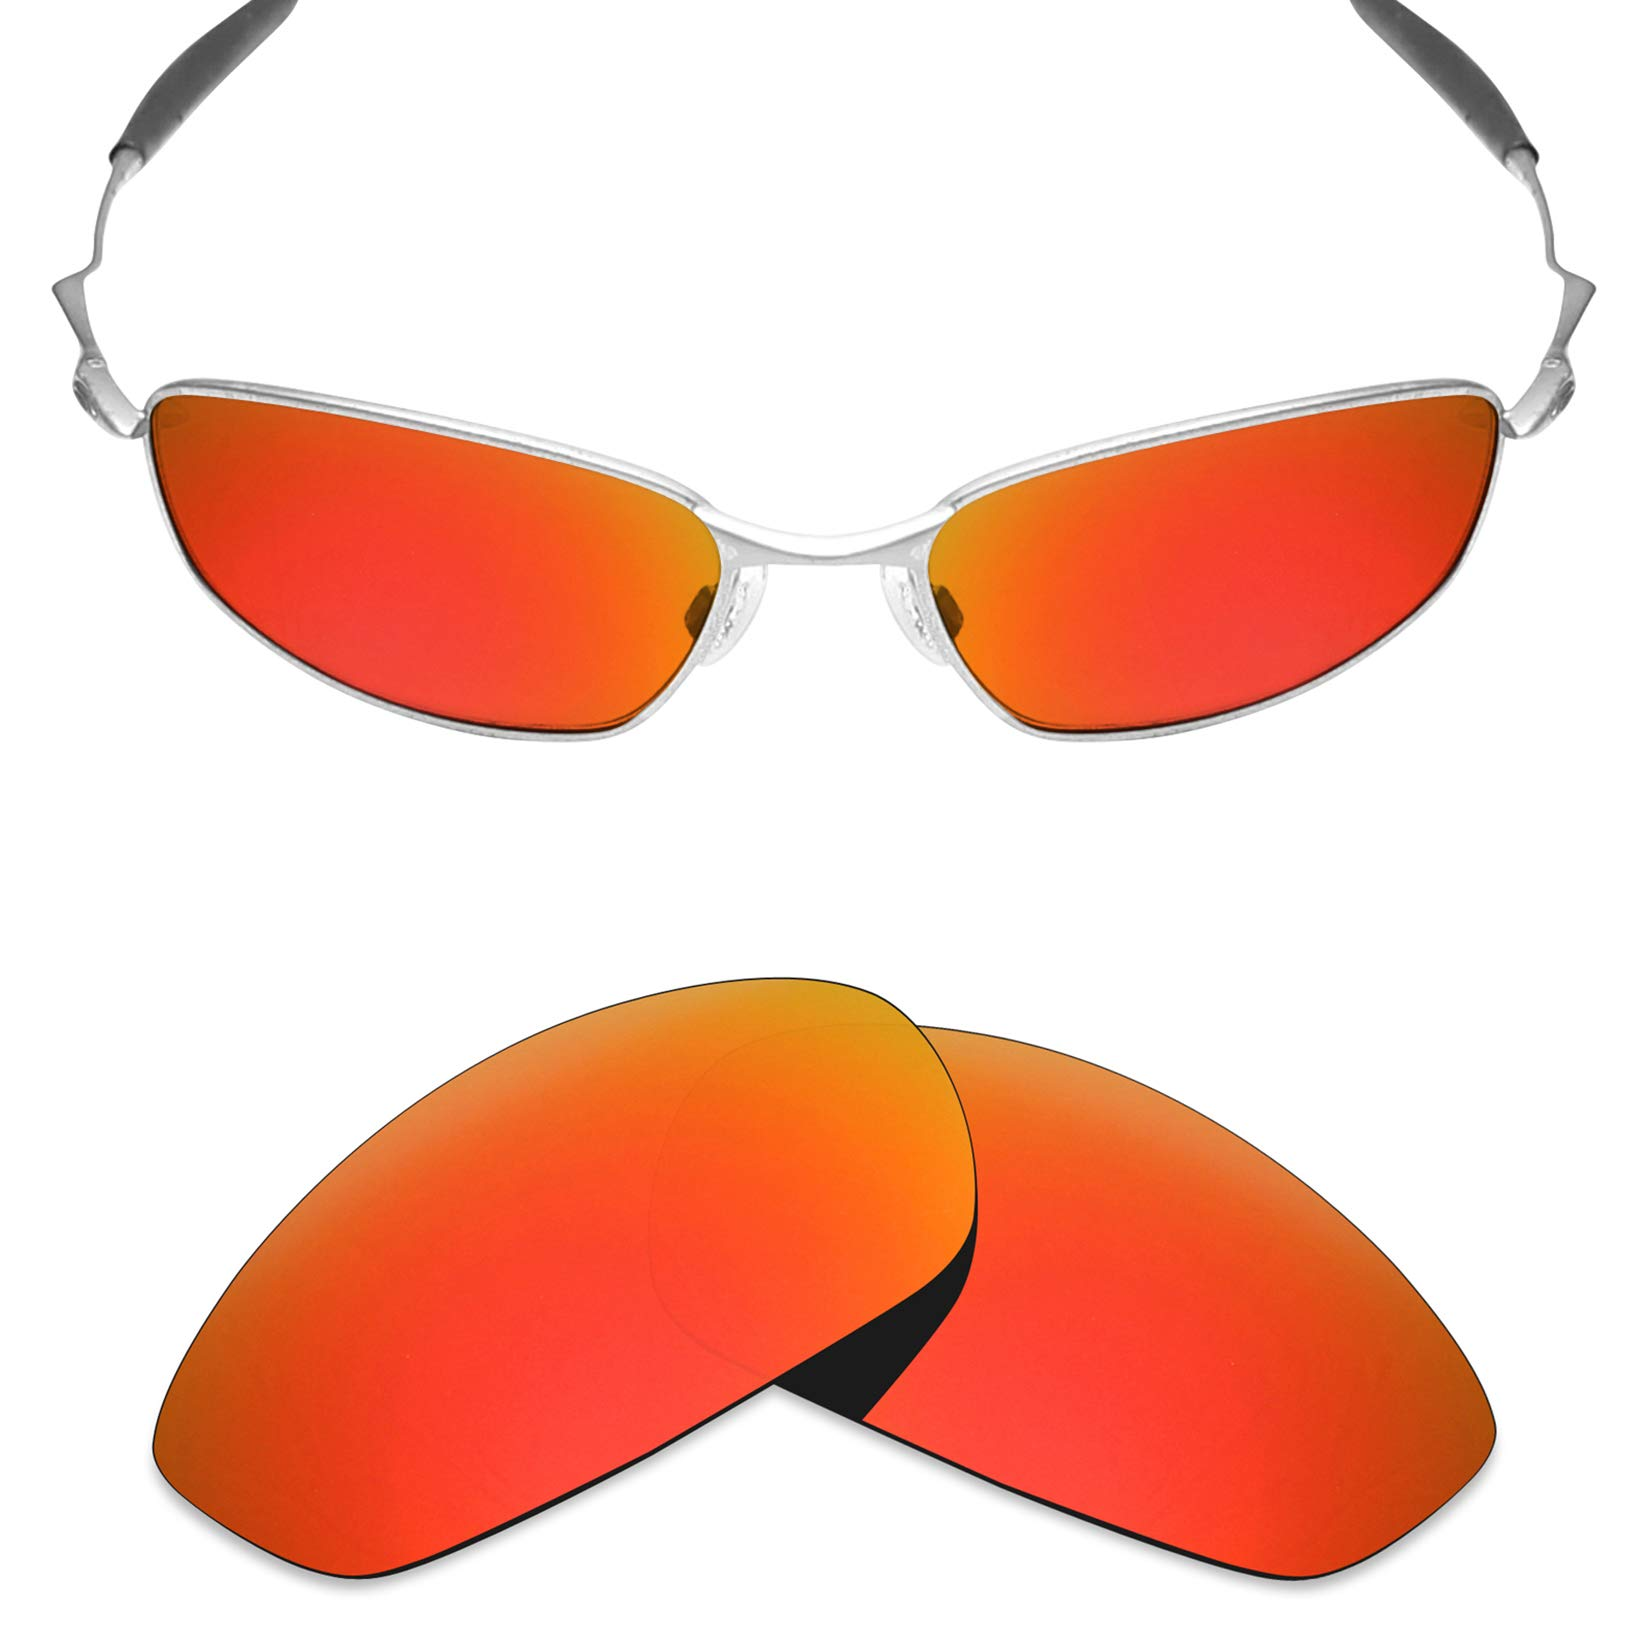 4279226f75c Mryok Polarized Replacement Lenses for Oakley Whisker - Fire Red